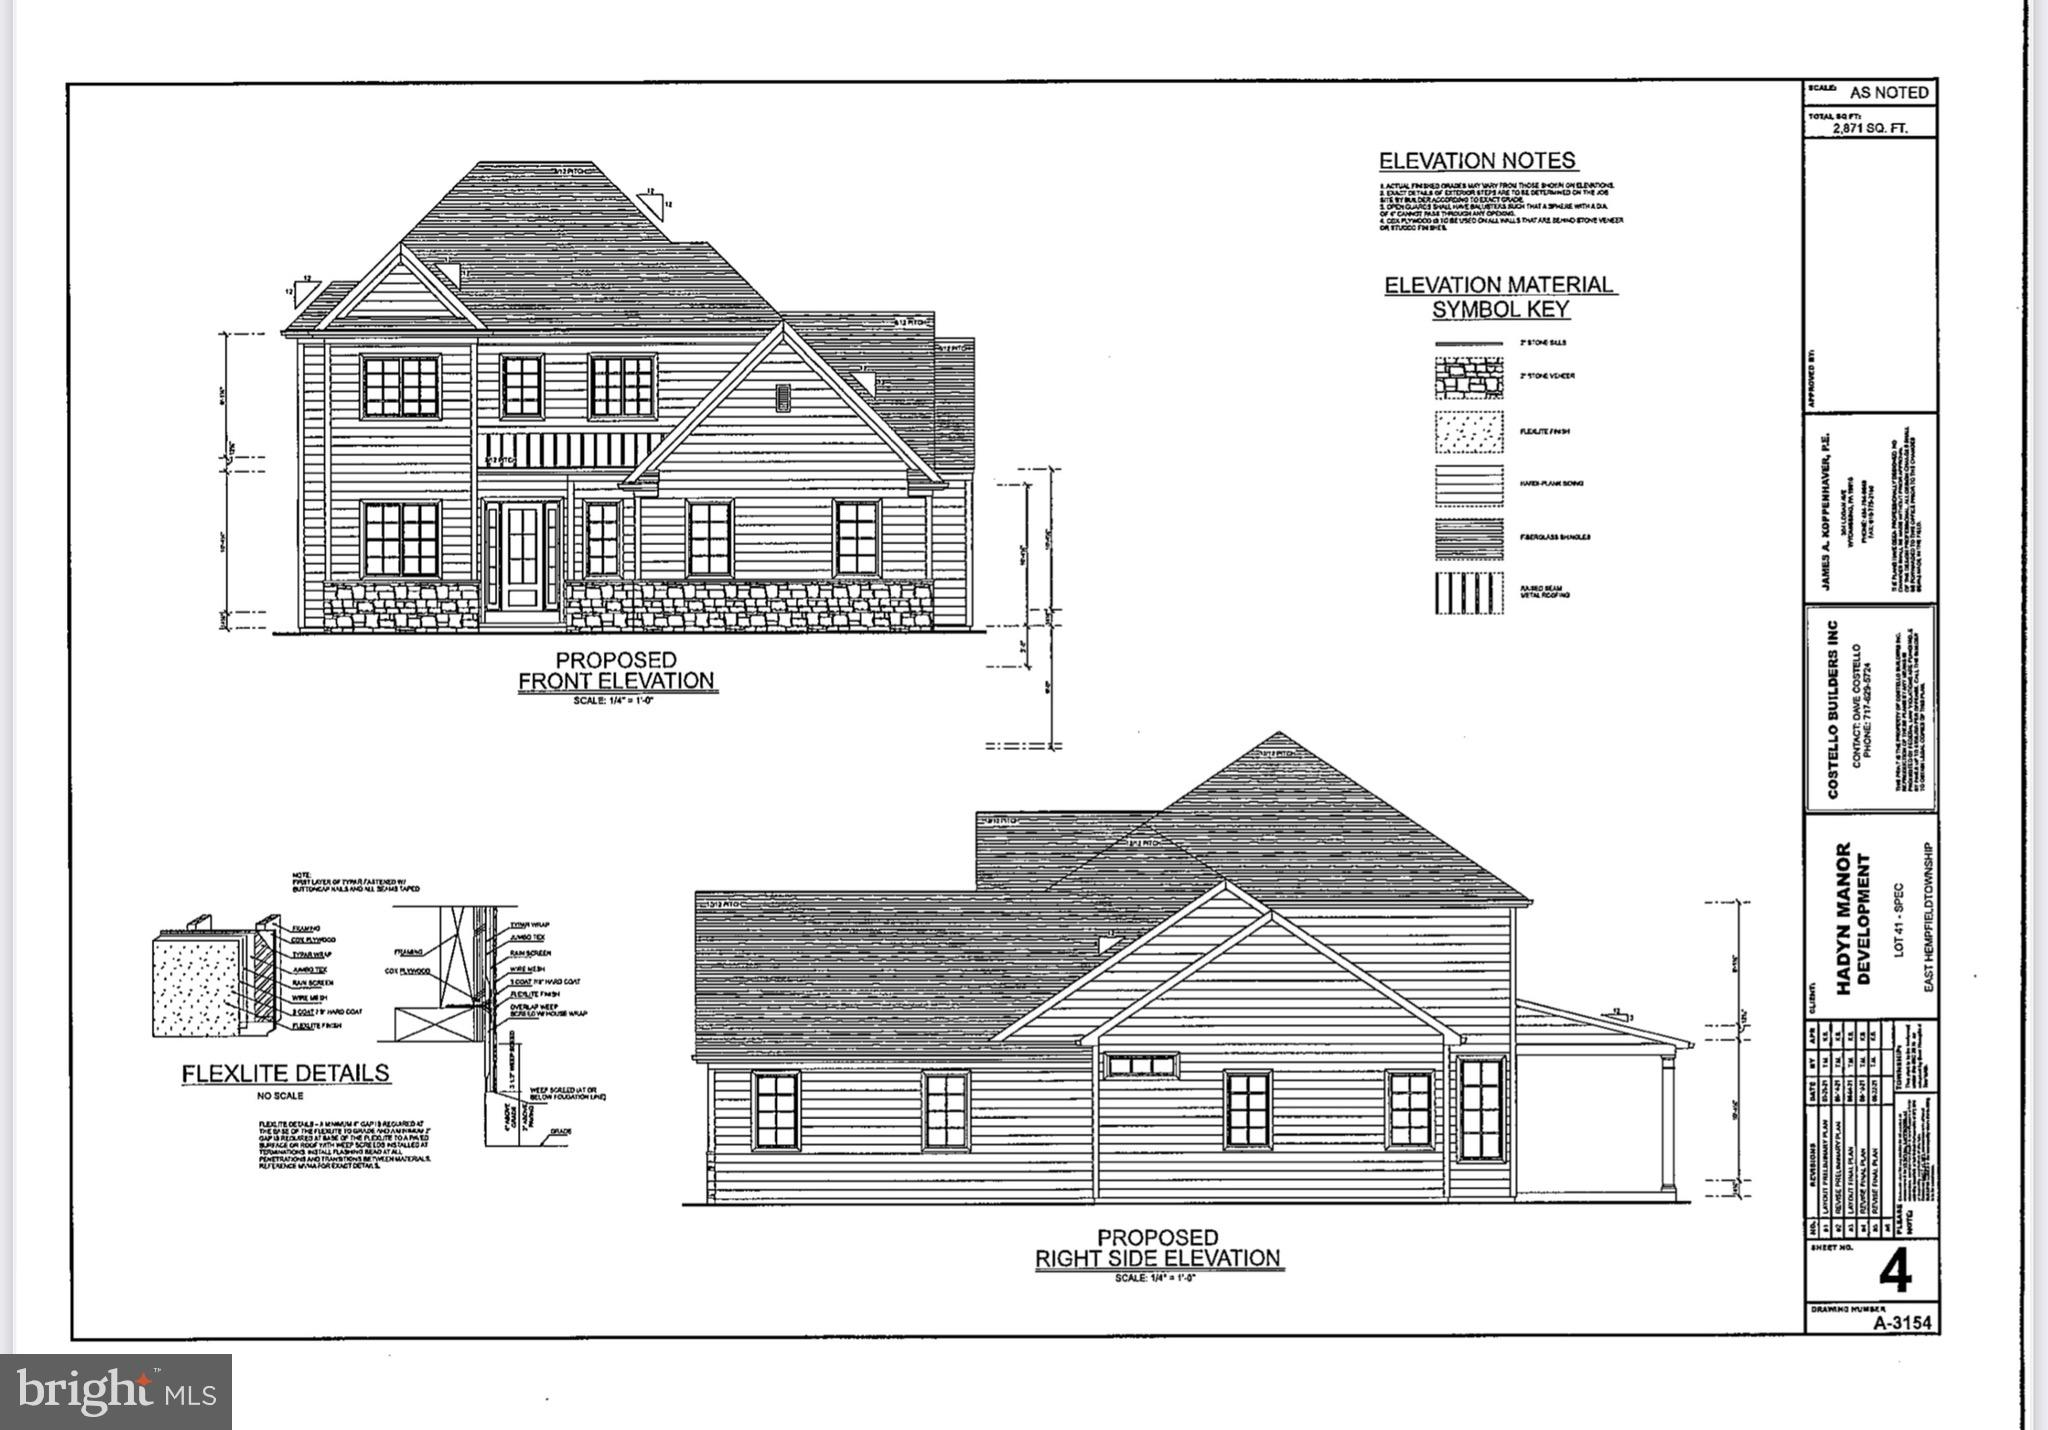 HAYDN MANOR'S newest Model Home under construction by Costello Builders*4 BR,4.5 Bath Two Story Overlooks Neighborhood Park and Walking Trails*First Floor Owner's Suite with Luxurious Bath and Walk in Closet*First Floor Study/Den with French Doors*10' Ceiling Height & Hardwood Floor throughout First Floor*Gourmet Custom Kitchen complete with SS Appliances-5 Burner Gas Cooktop, Granite Countertops, Tile Backsplash, Center Island/Breakfast Bar, Walk-in Pantry*Open Floor Plan-Large Windows-Ample Natural Light*Second Floor has 3 BR's with Walk-in Closets, 2 Full Baths and a Loft* Finished Daylight Basement Family Room and Full bath plus large storage areas*2 Car Side Entry Garage*Covered Patio Overlooks Park